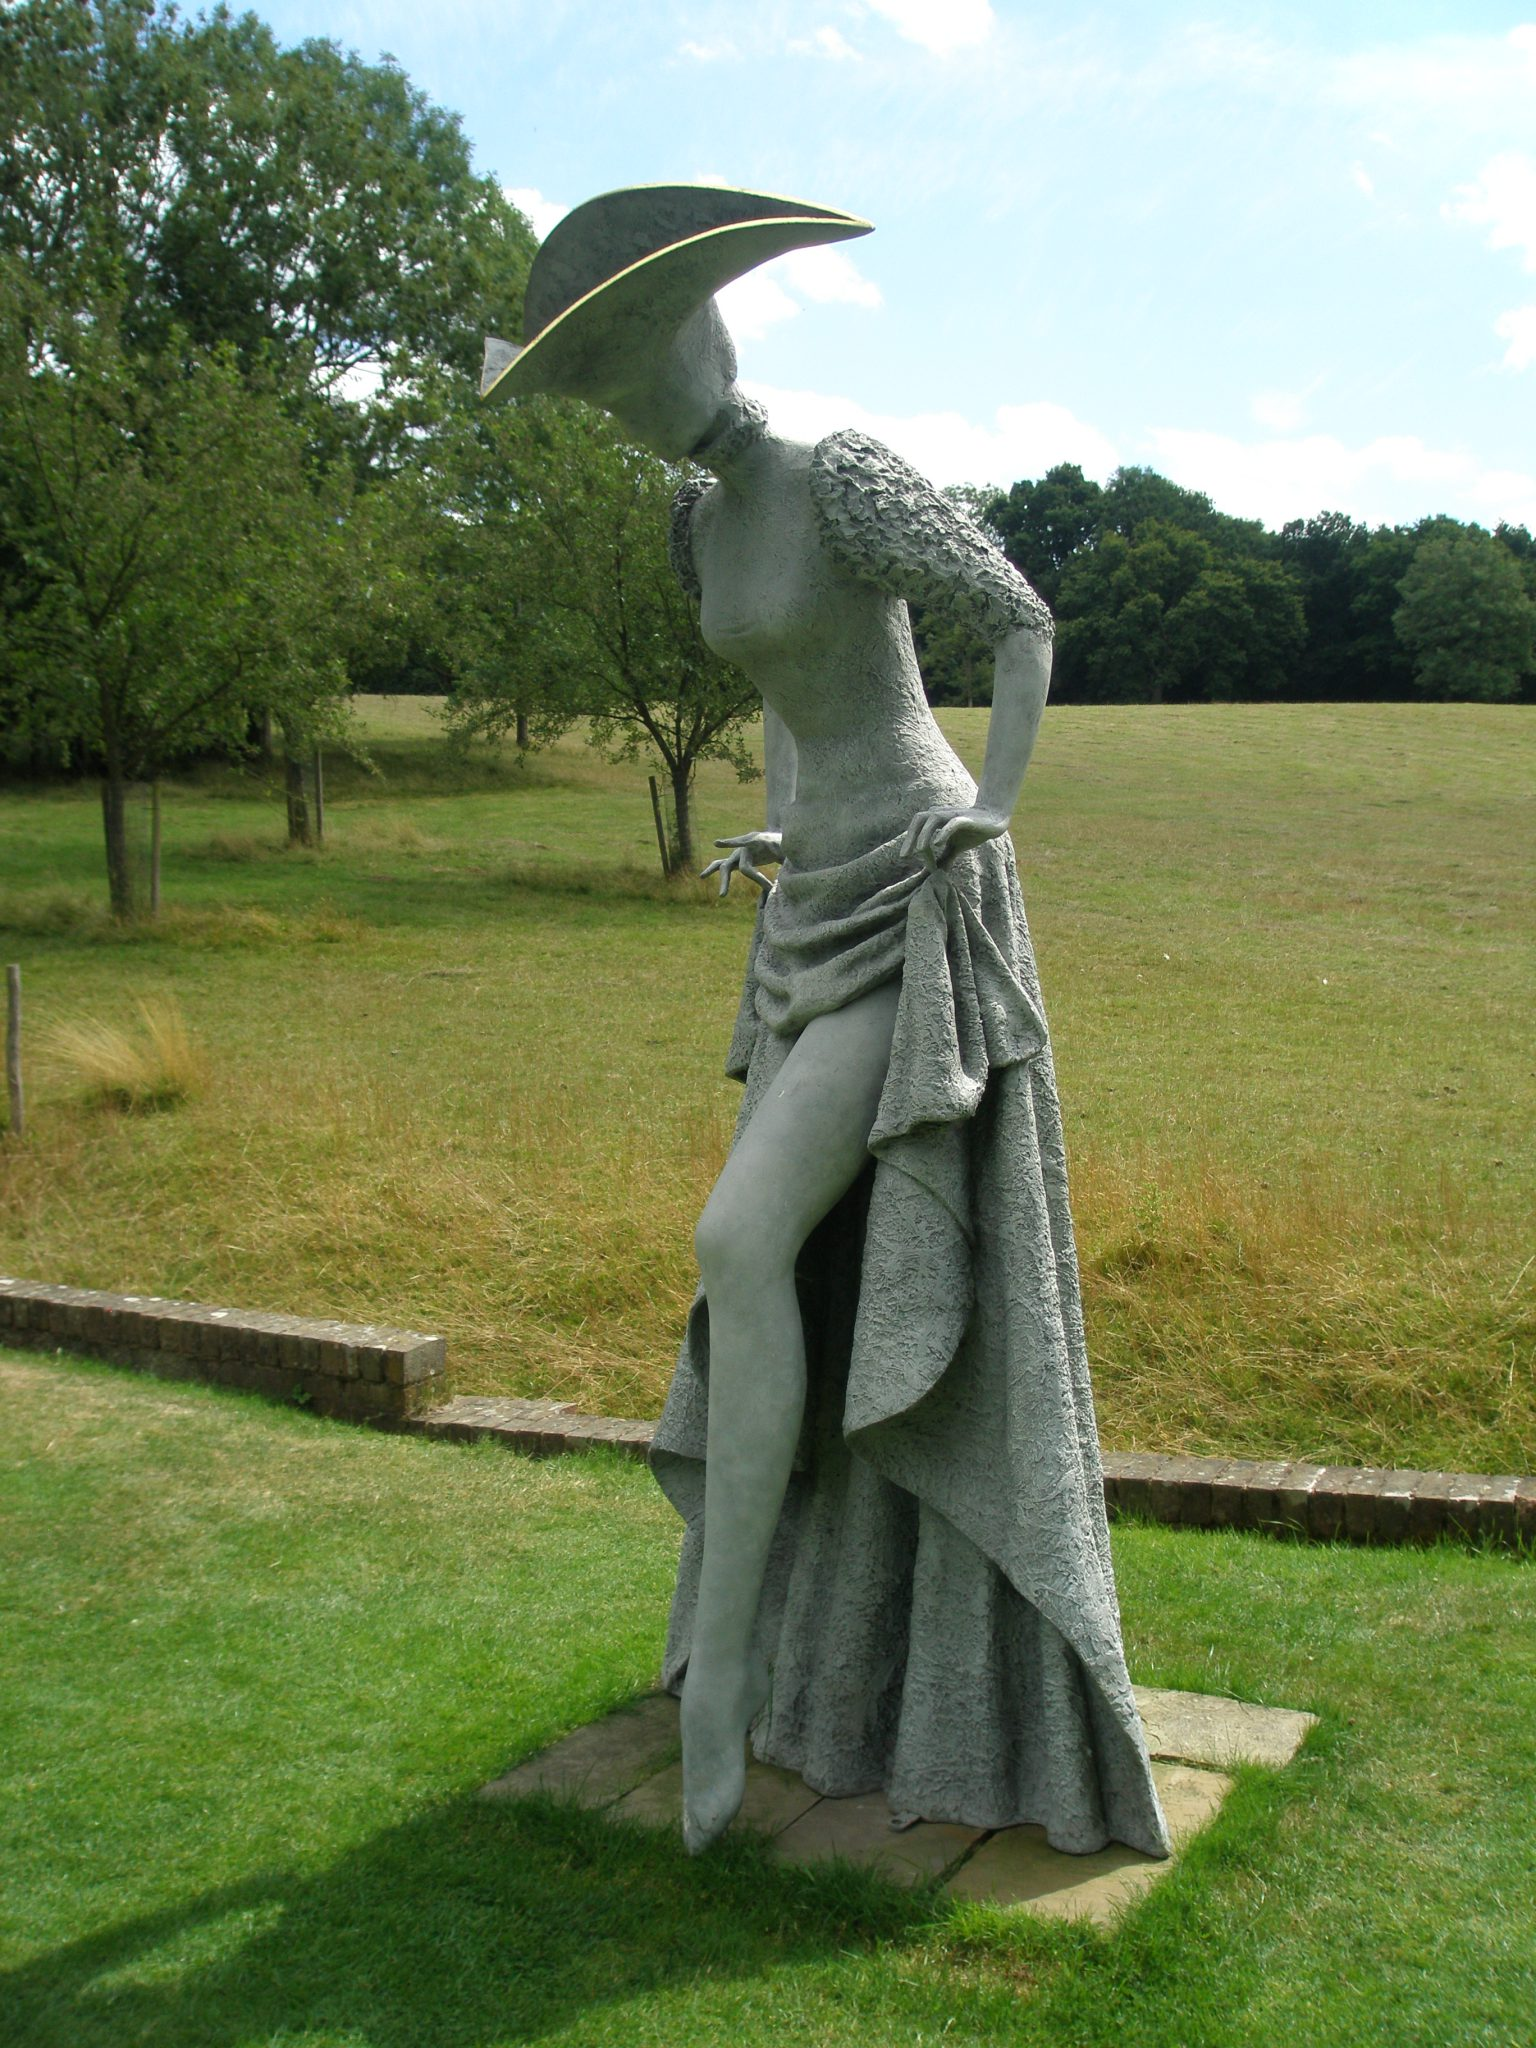 At the base of the central path through the Herbaceous Border, this 8-foot-tall Lady exposes a shapely leg. Behind her is a Ha-Ha ditch, which keeps Pashey's flocks of sheep in their fields, and out of the Gardens